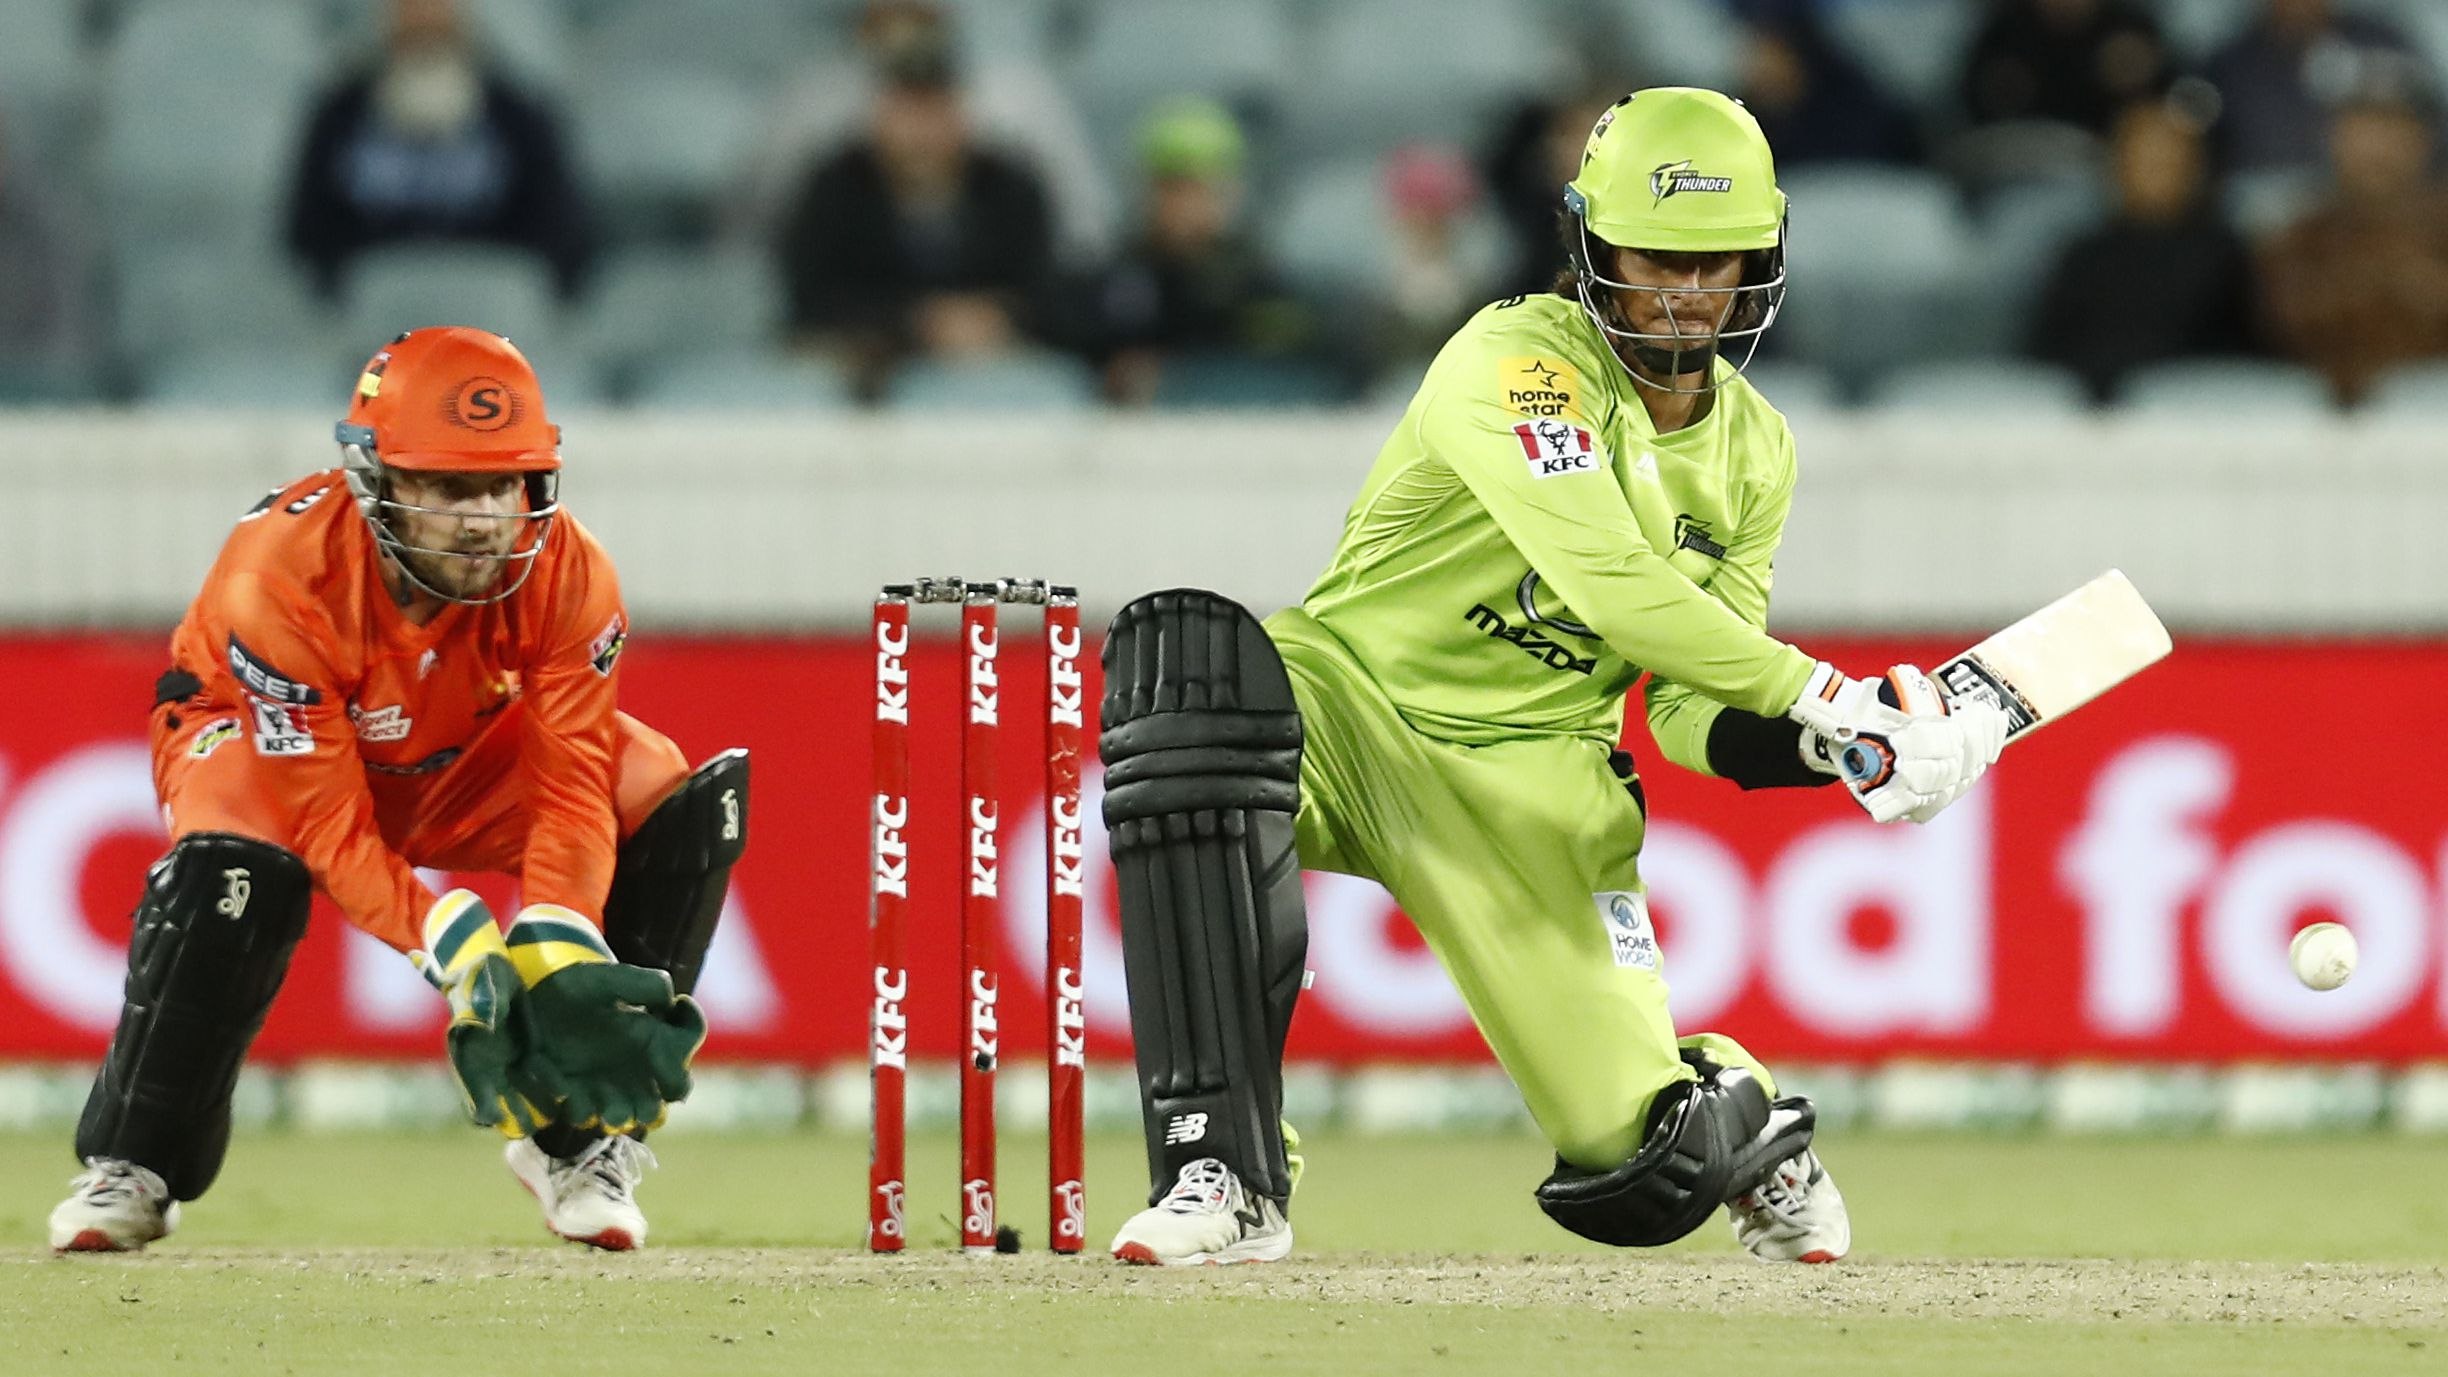 Master and apprentice light up Manuka Oval as Sydney Thunder cruise home against Perth Scorchers